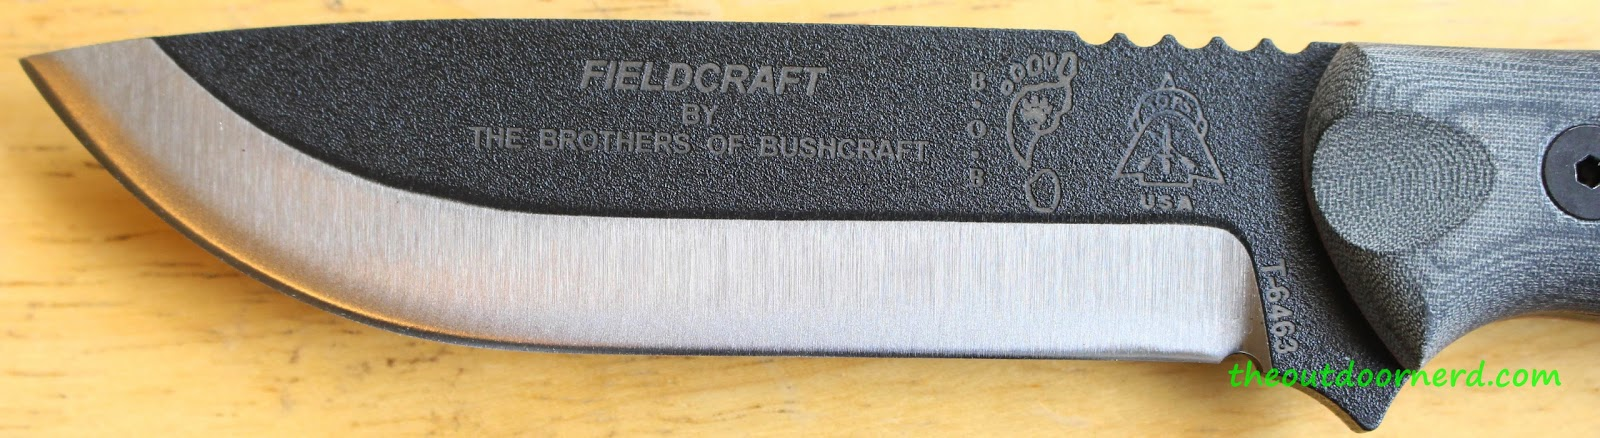 Tops Fieldcraft BOB Fixed Blade Knife: Closeup Of Blade